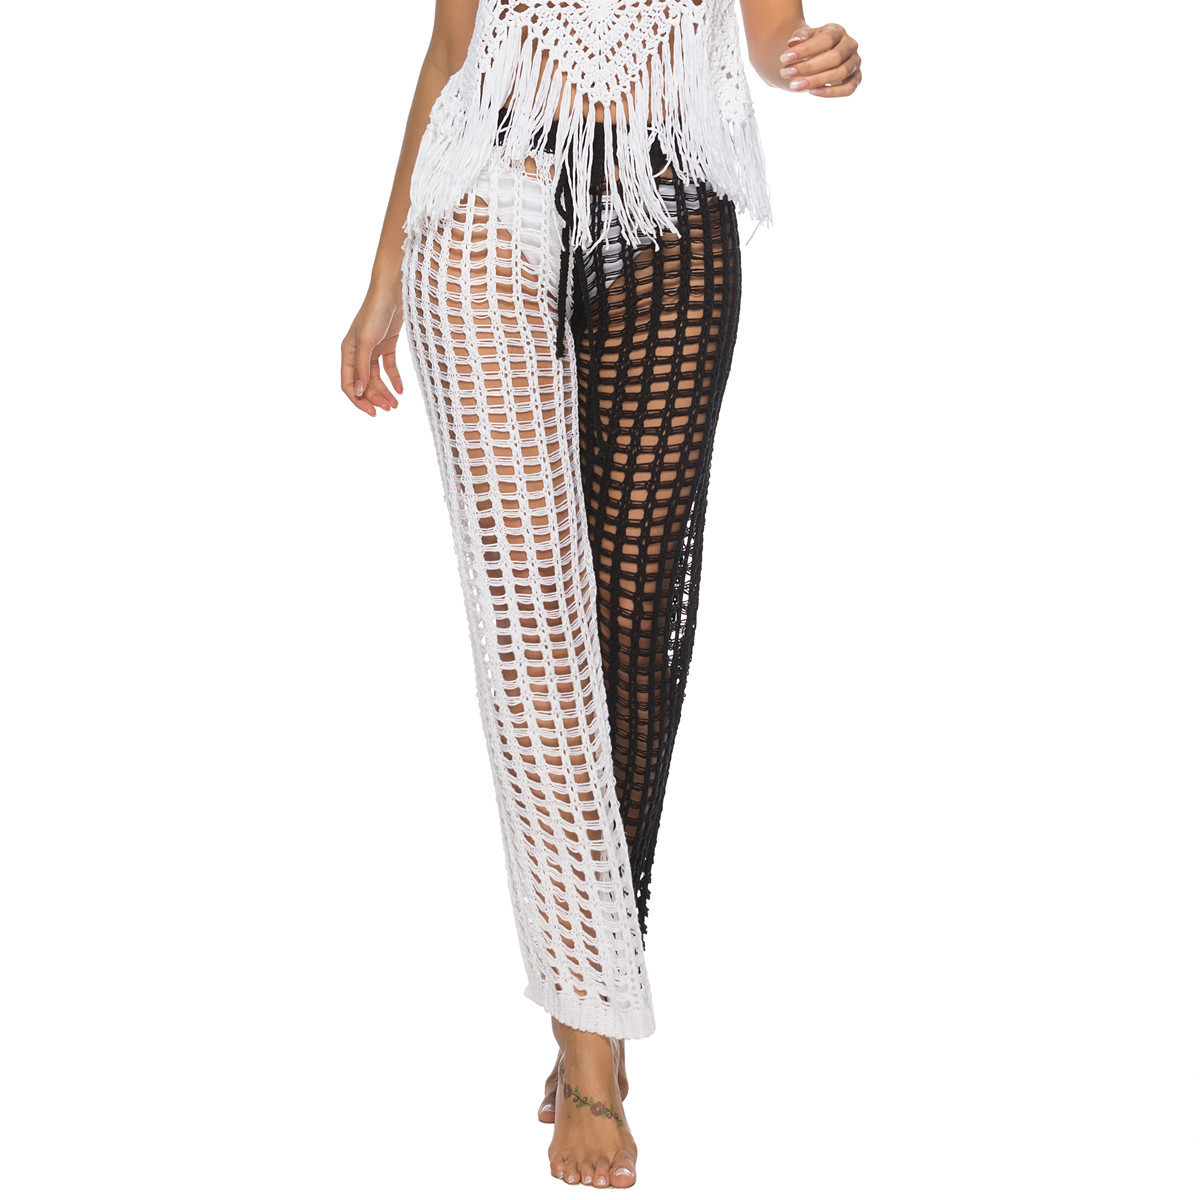 Boho Beach Croche BW